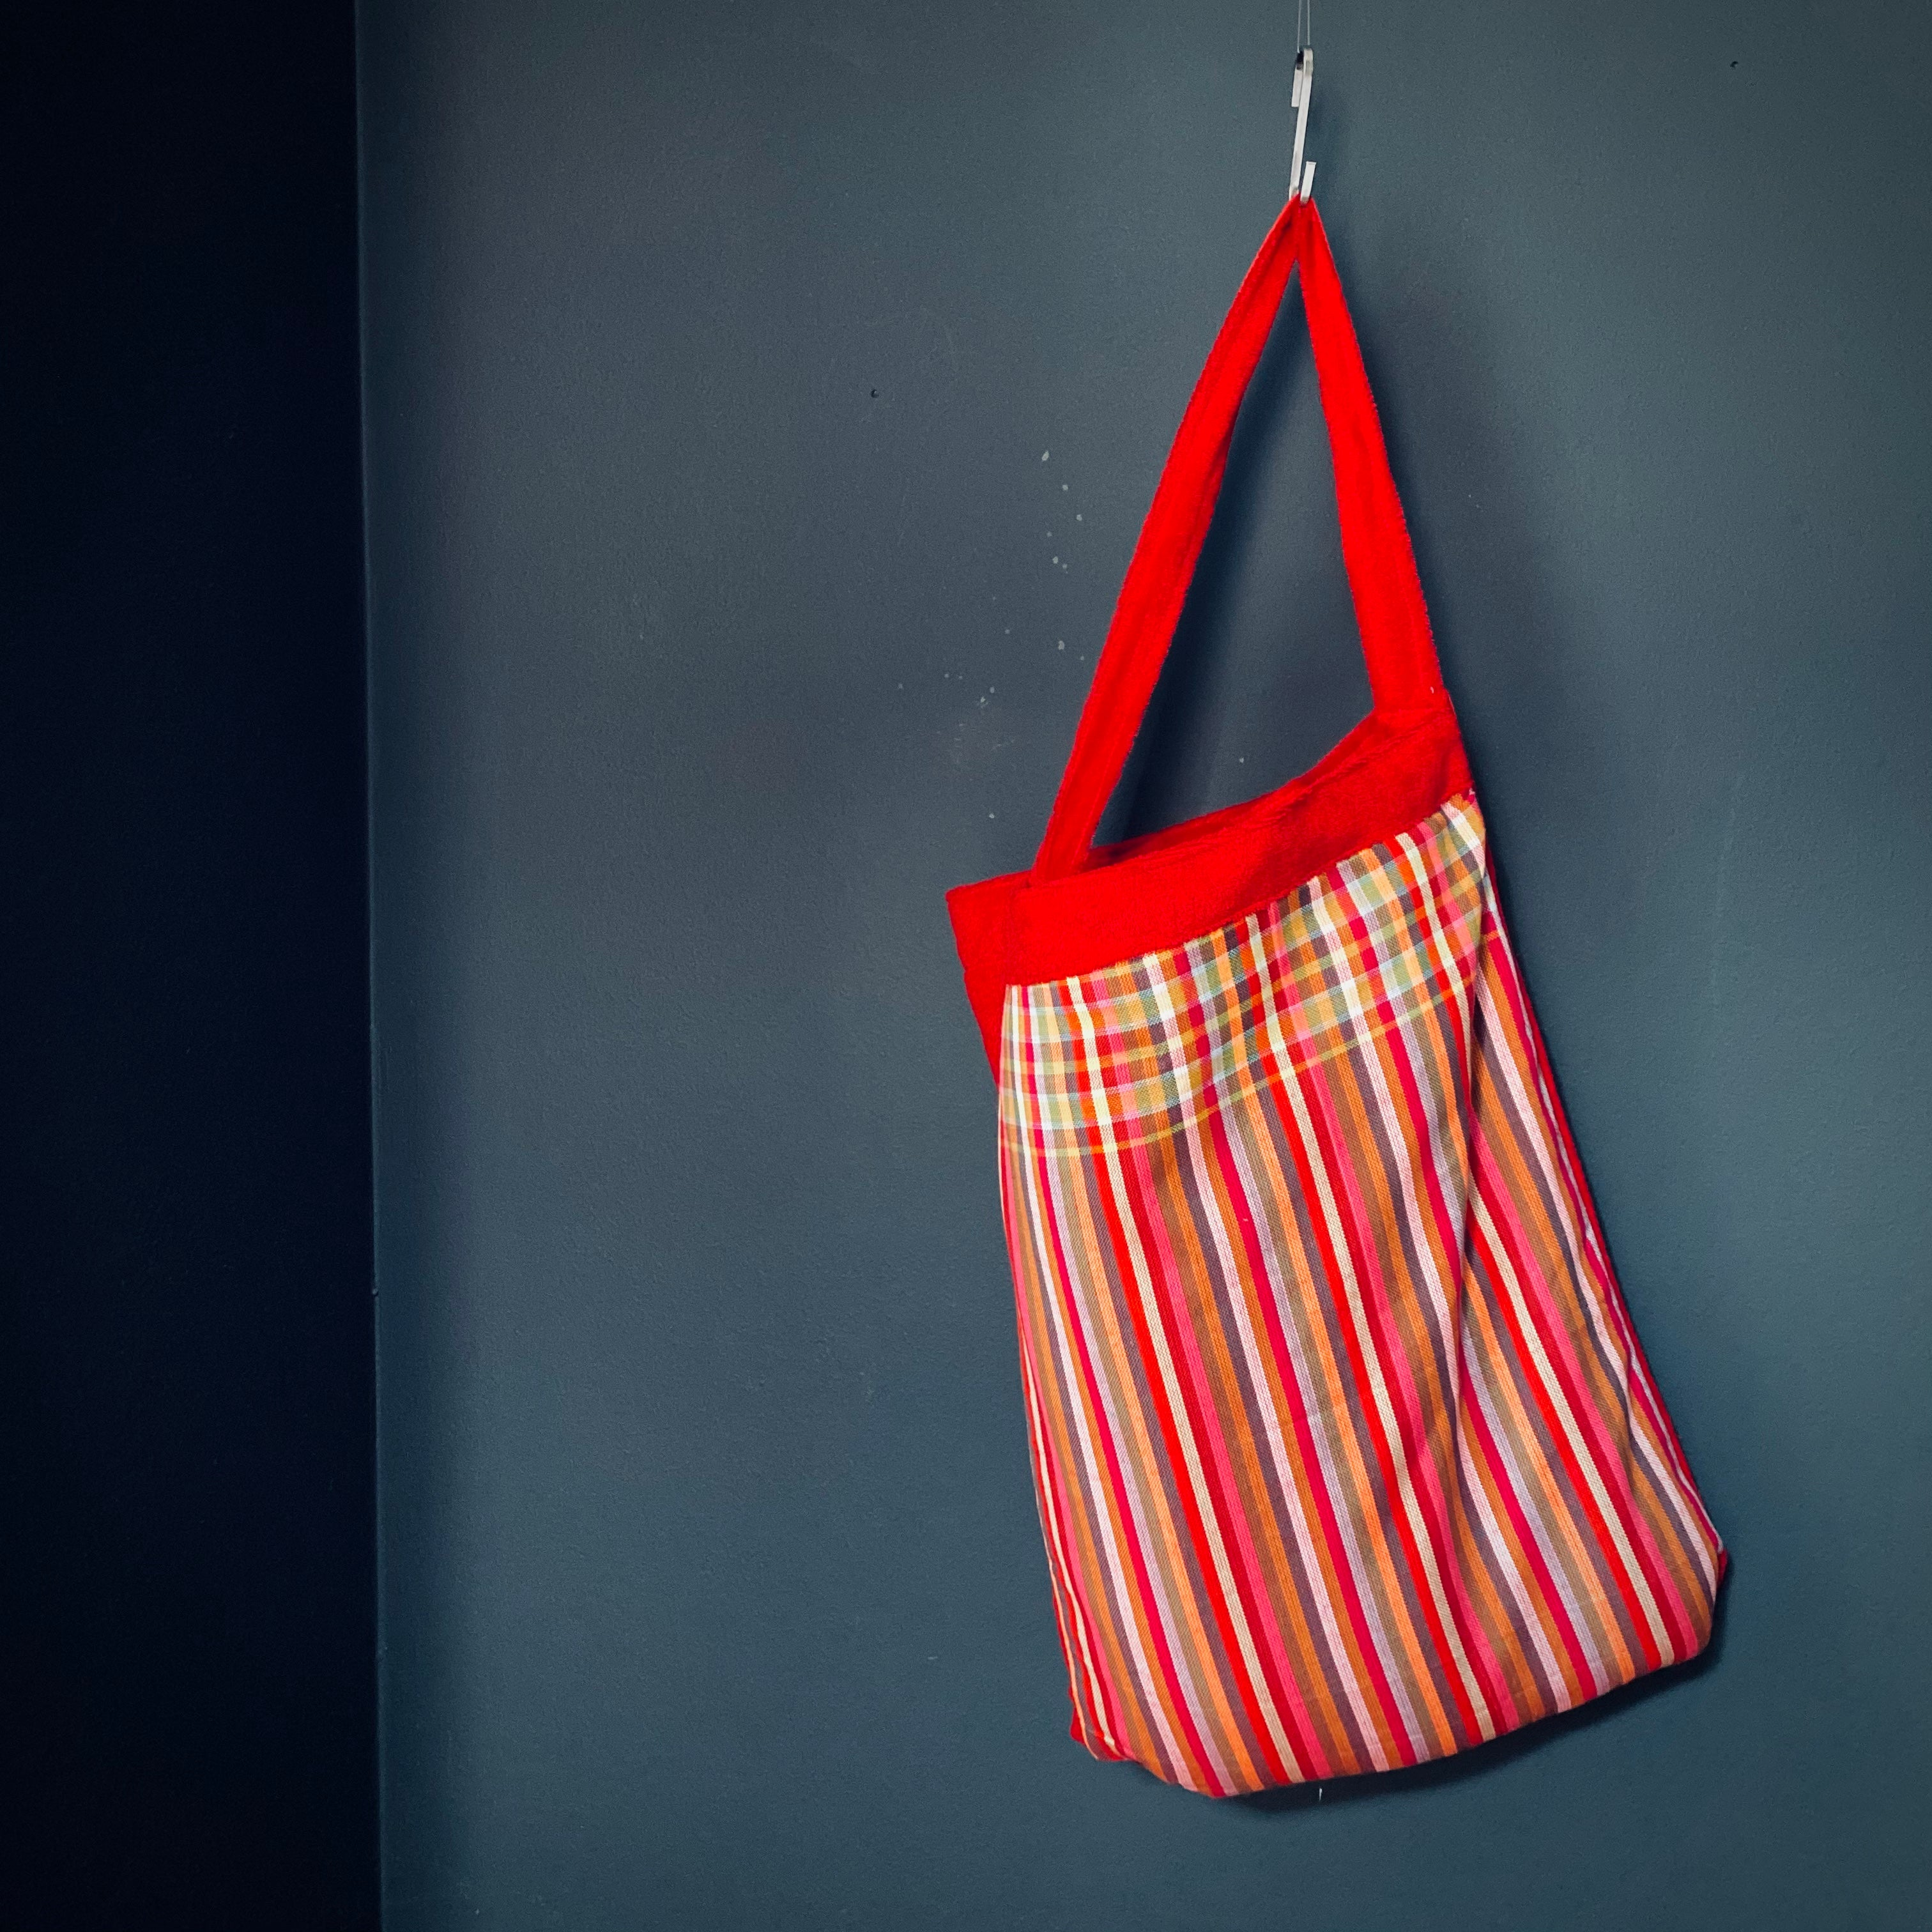 MagicBeachBag - multicolored stripes / red towel